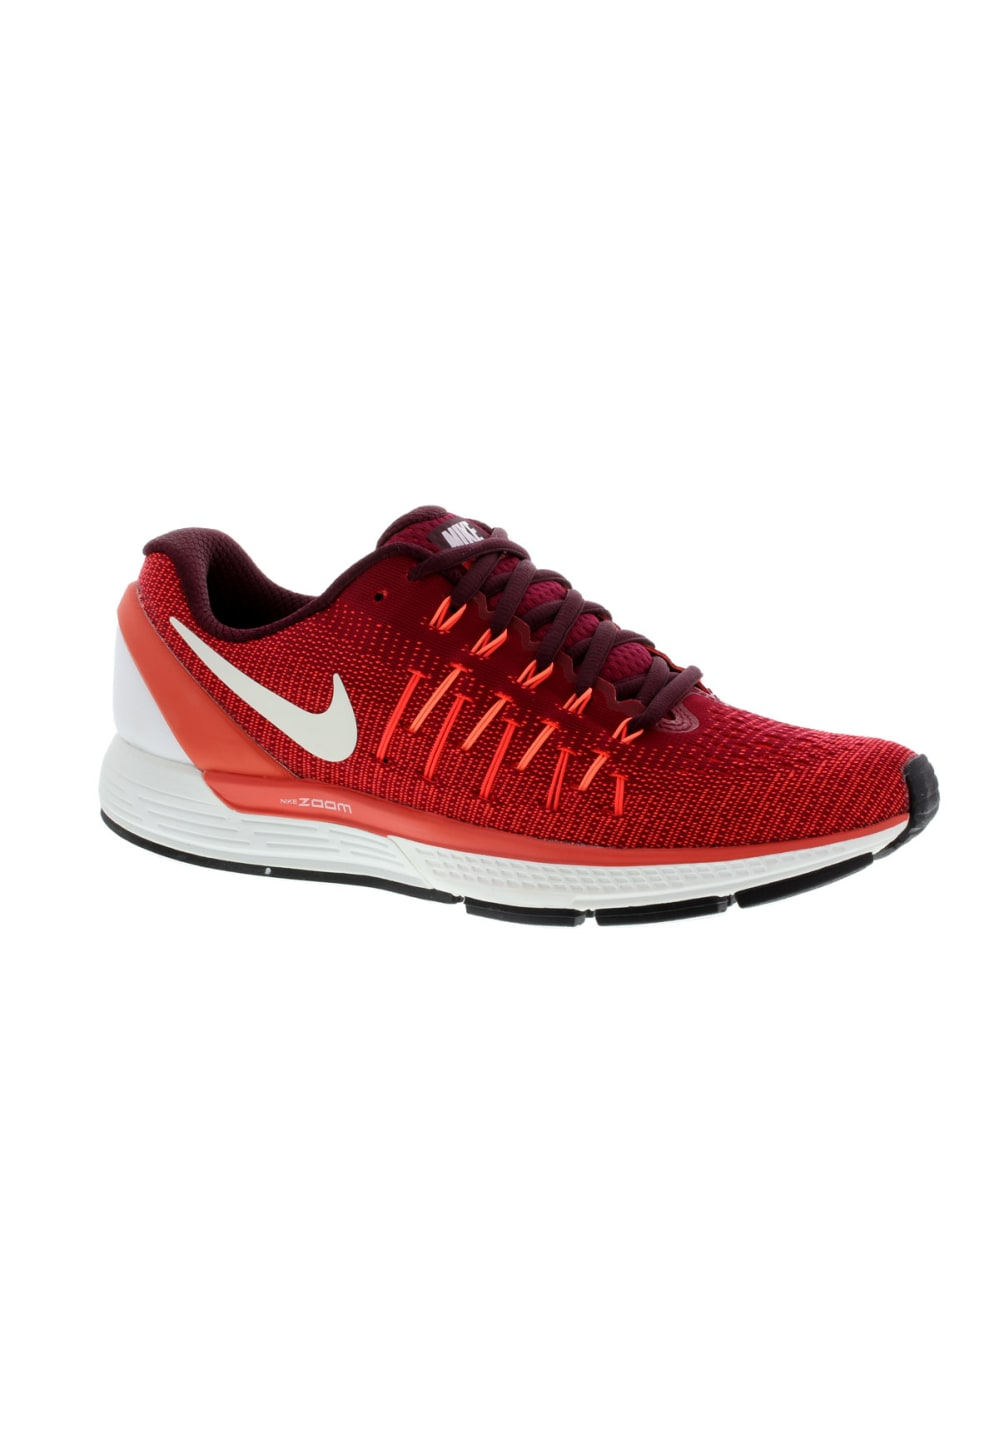 chaussures de sport 8bf2f afc36 Nike Air Zoom Odyssey 2 - Running shoes for Women - Red